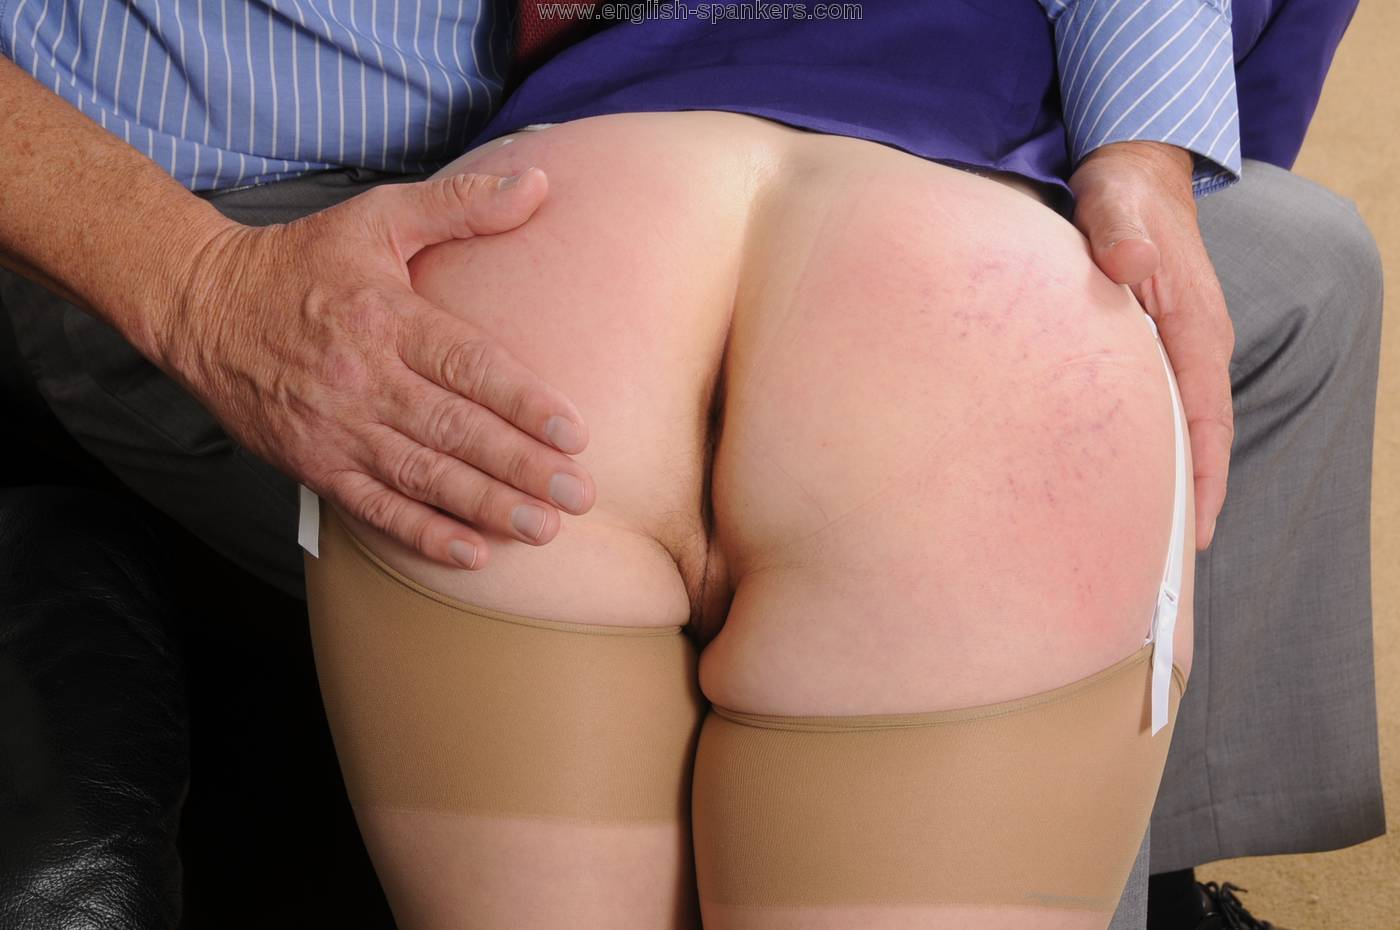 Was some Free spank gallery those videos